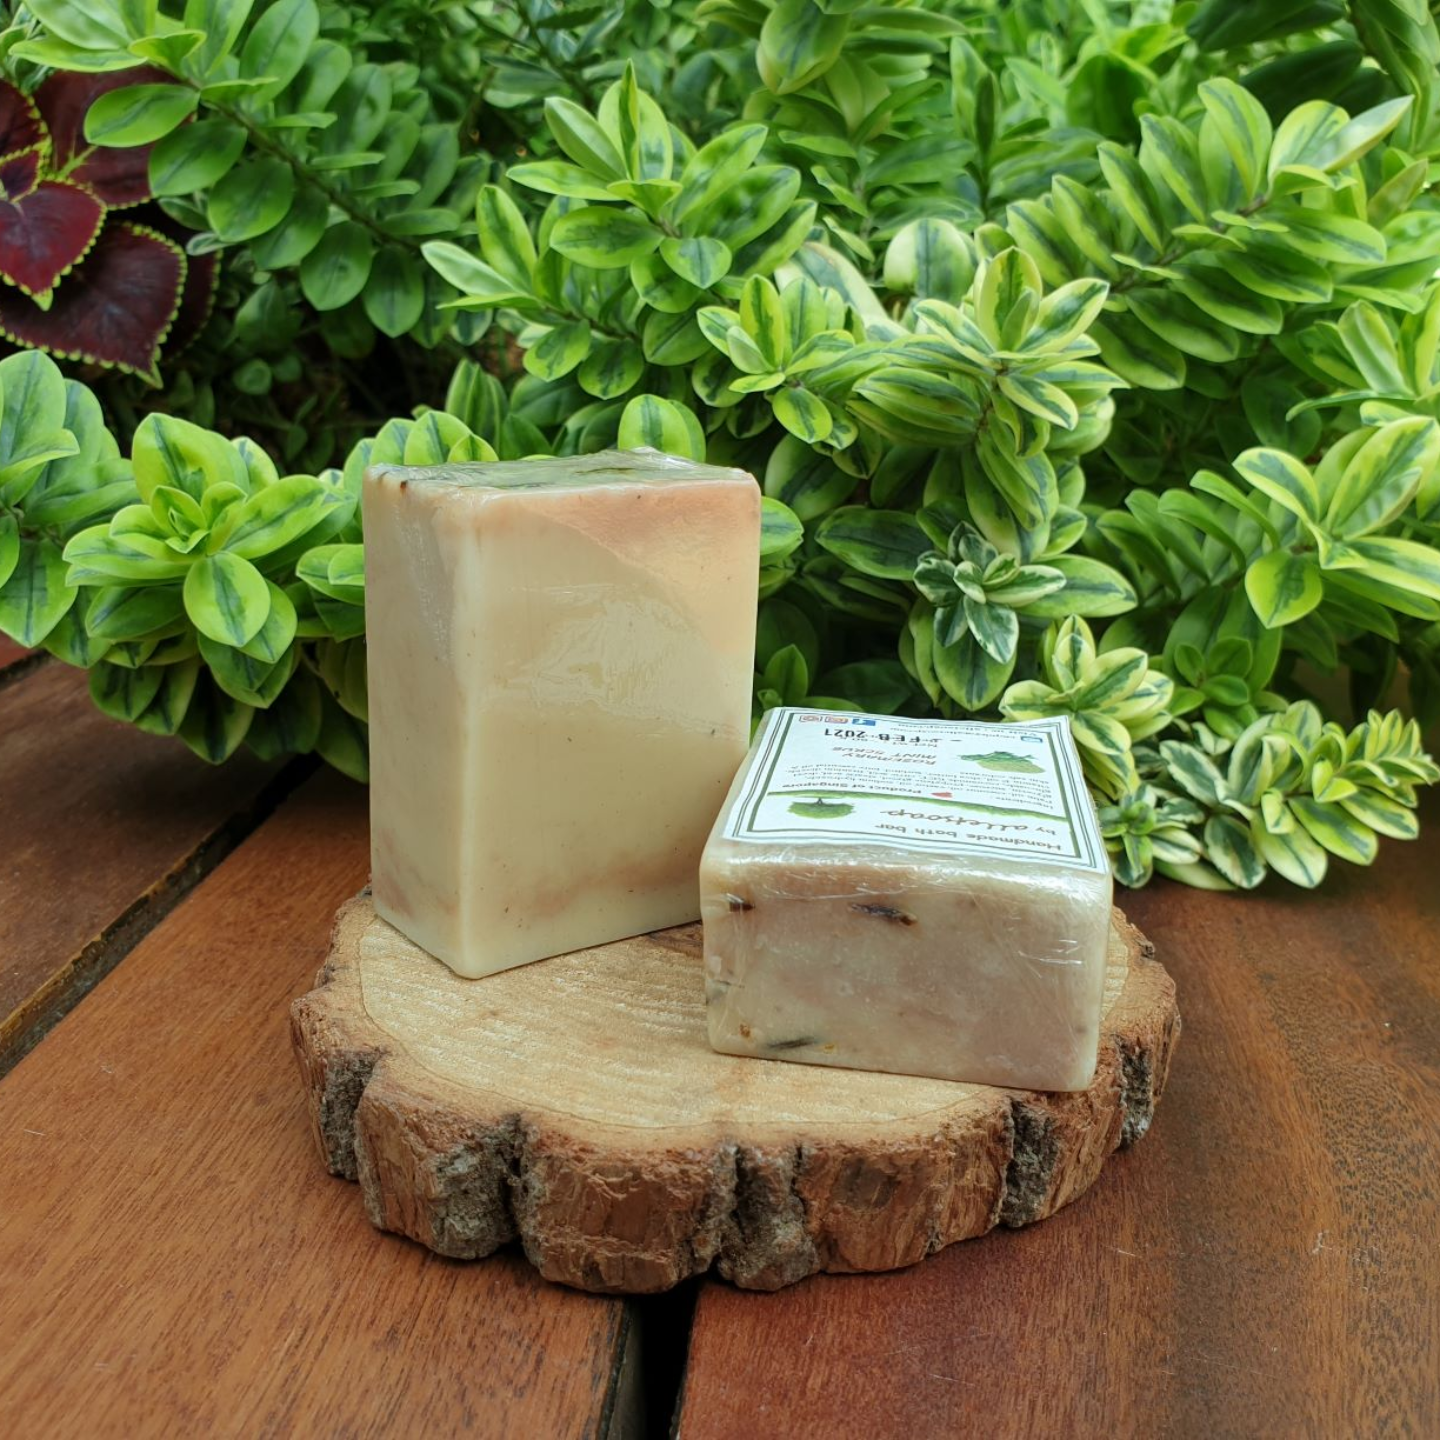 ROSEMARY MINT SCRUB HAND SOAP